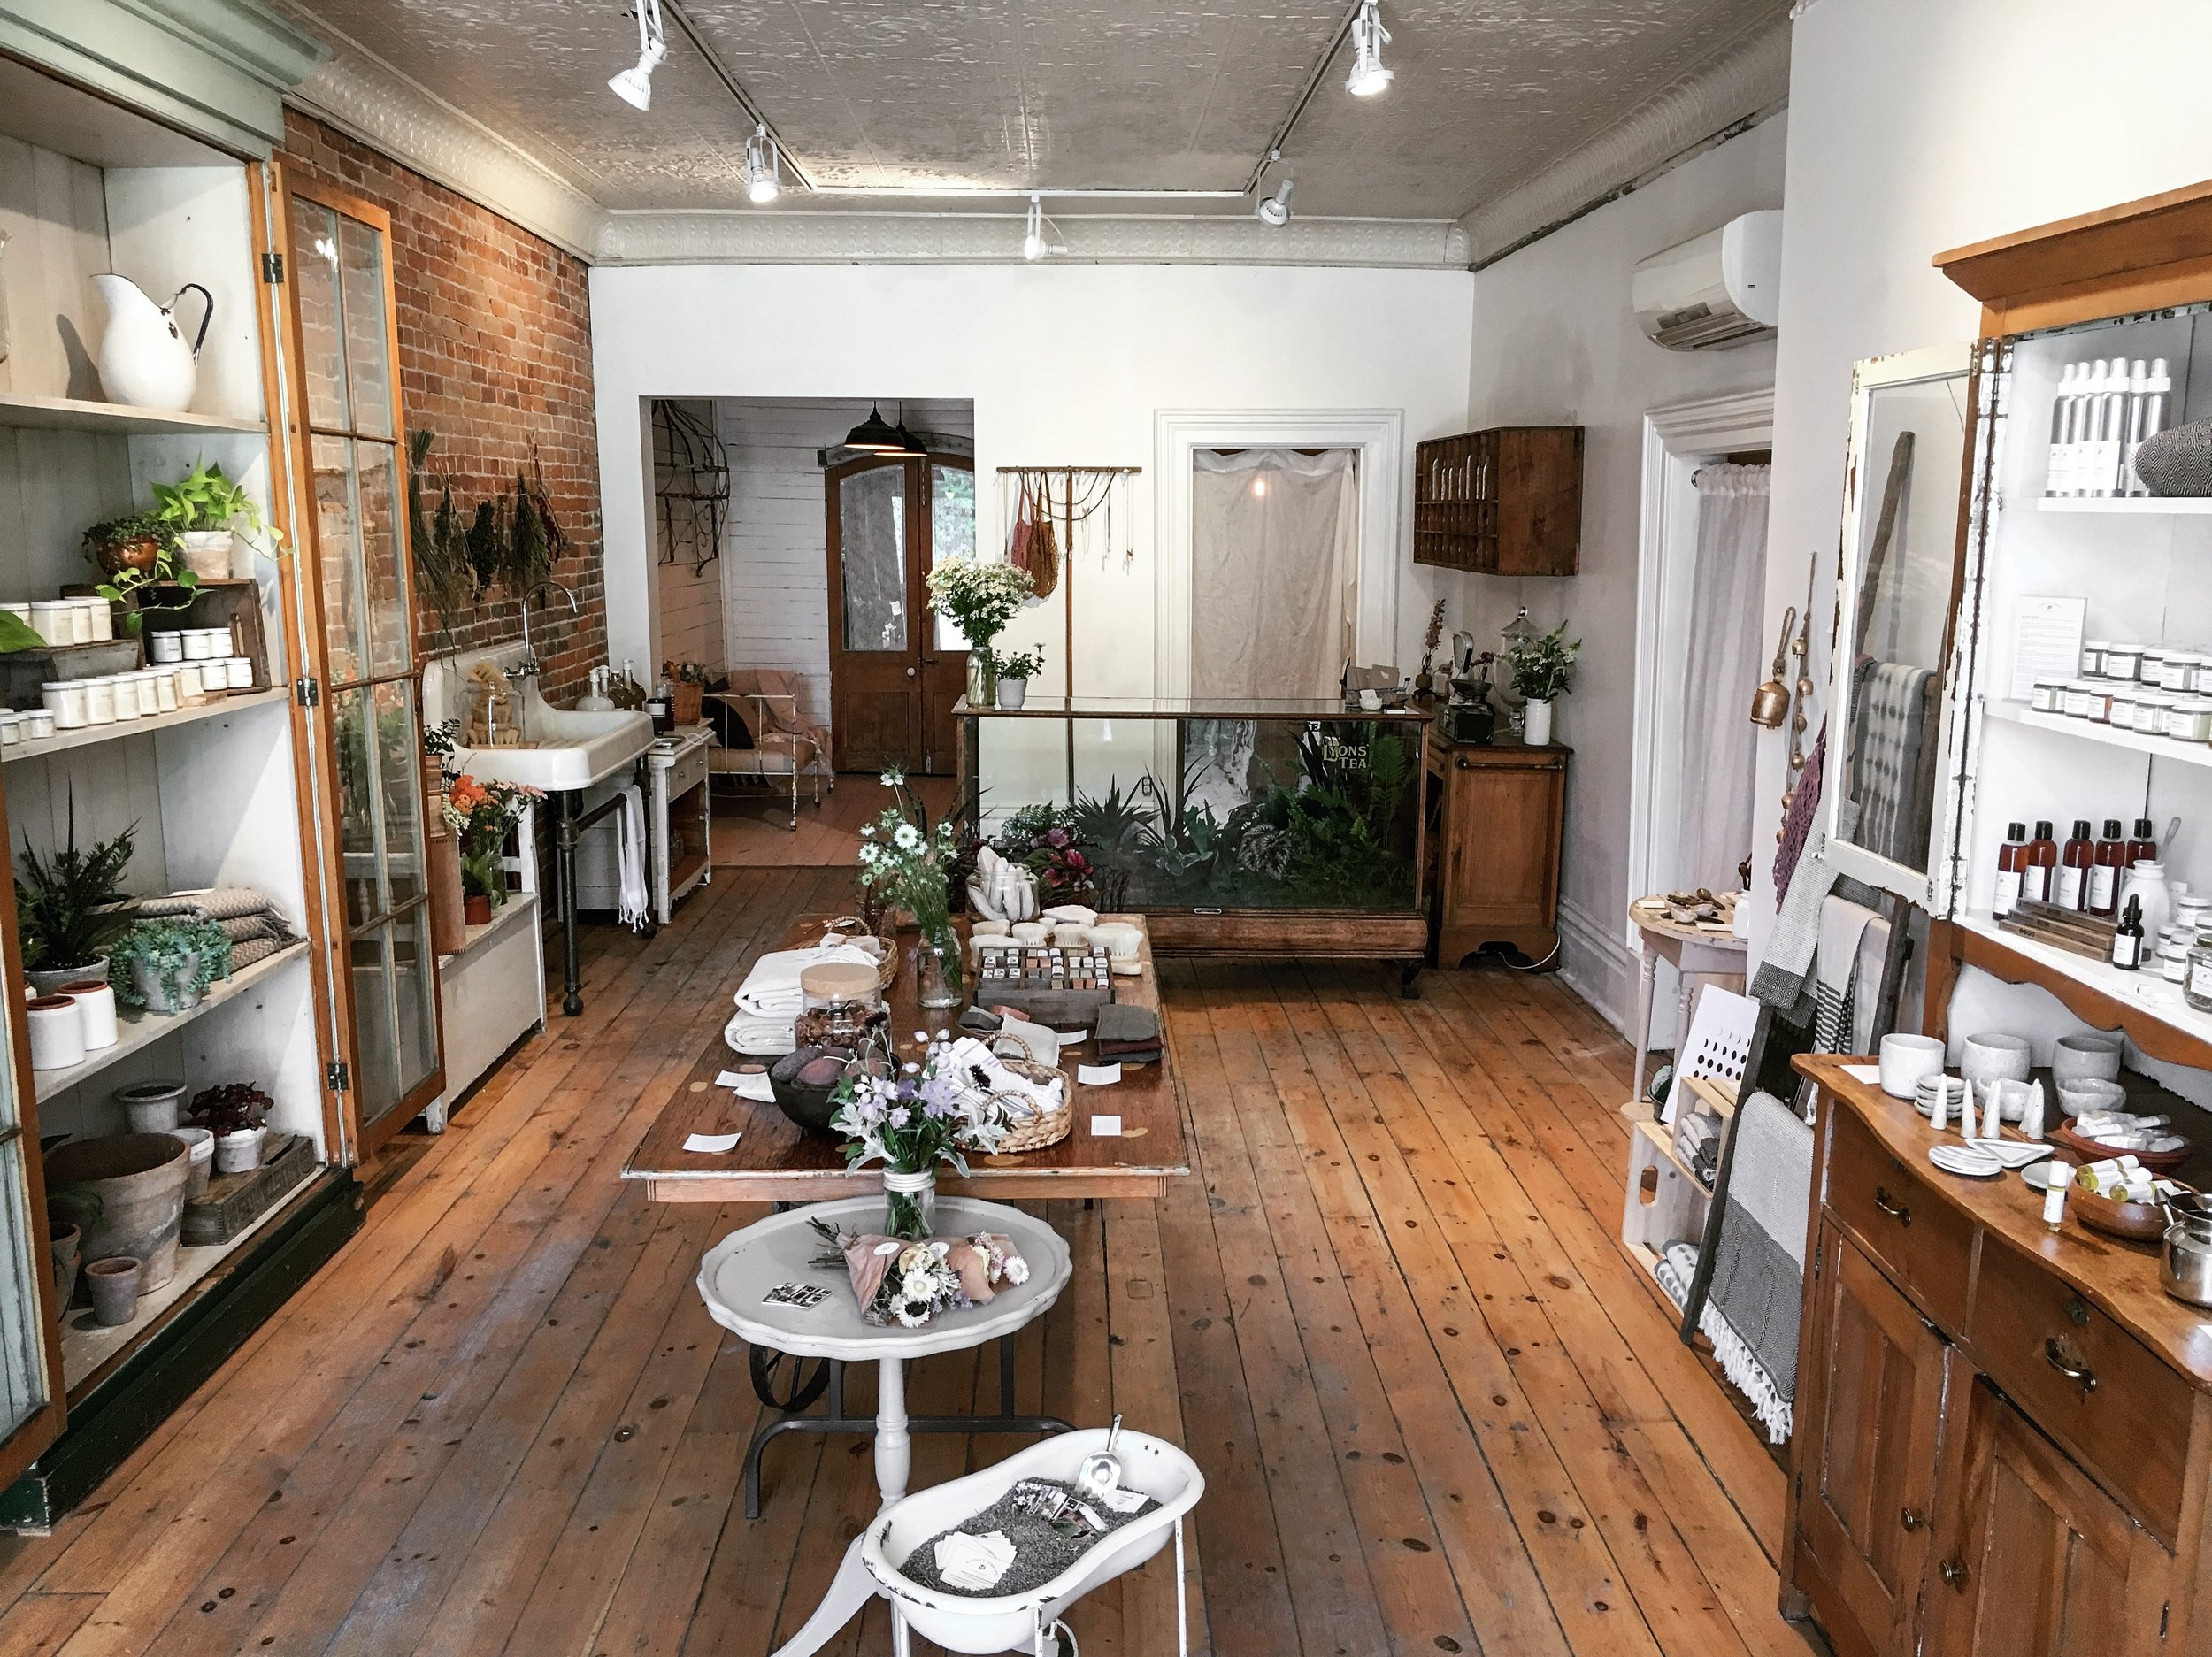 shop   Prince Edward County - 202 Main StreetPicton, Ontario K0K 2T0Hours: Tuesday to Saturday 10-5A collaborative space between Sunday's Company and Coriander Girl.